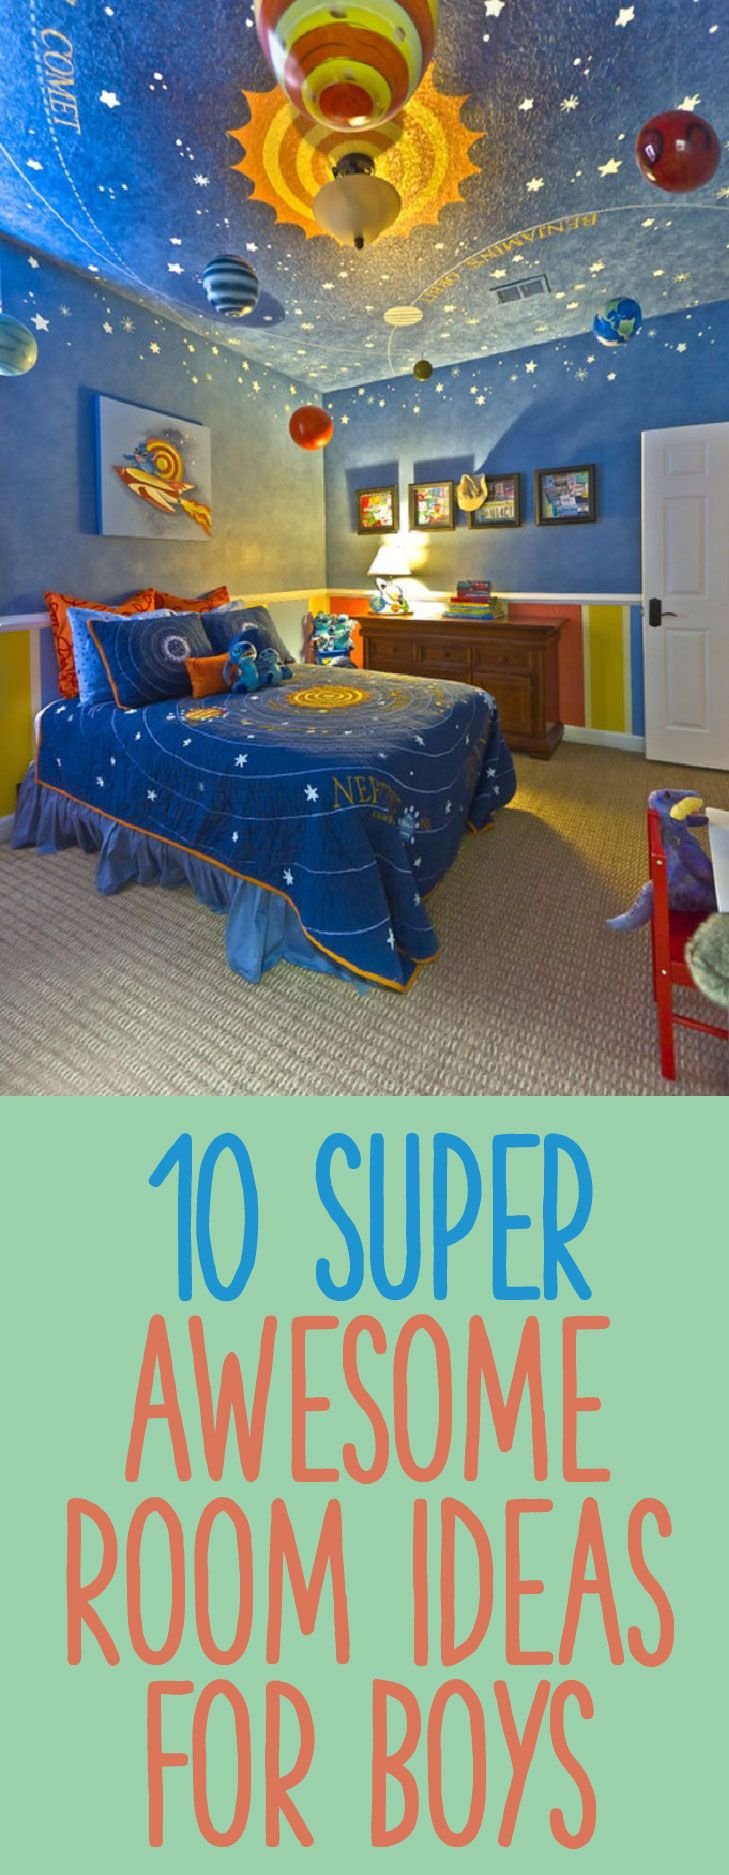 10 Super Awesome Room Ideas For Boys Kid Room Decor Boy Room Kids Room